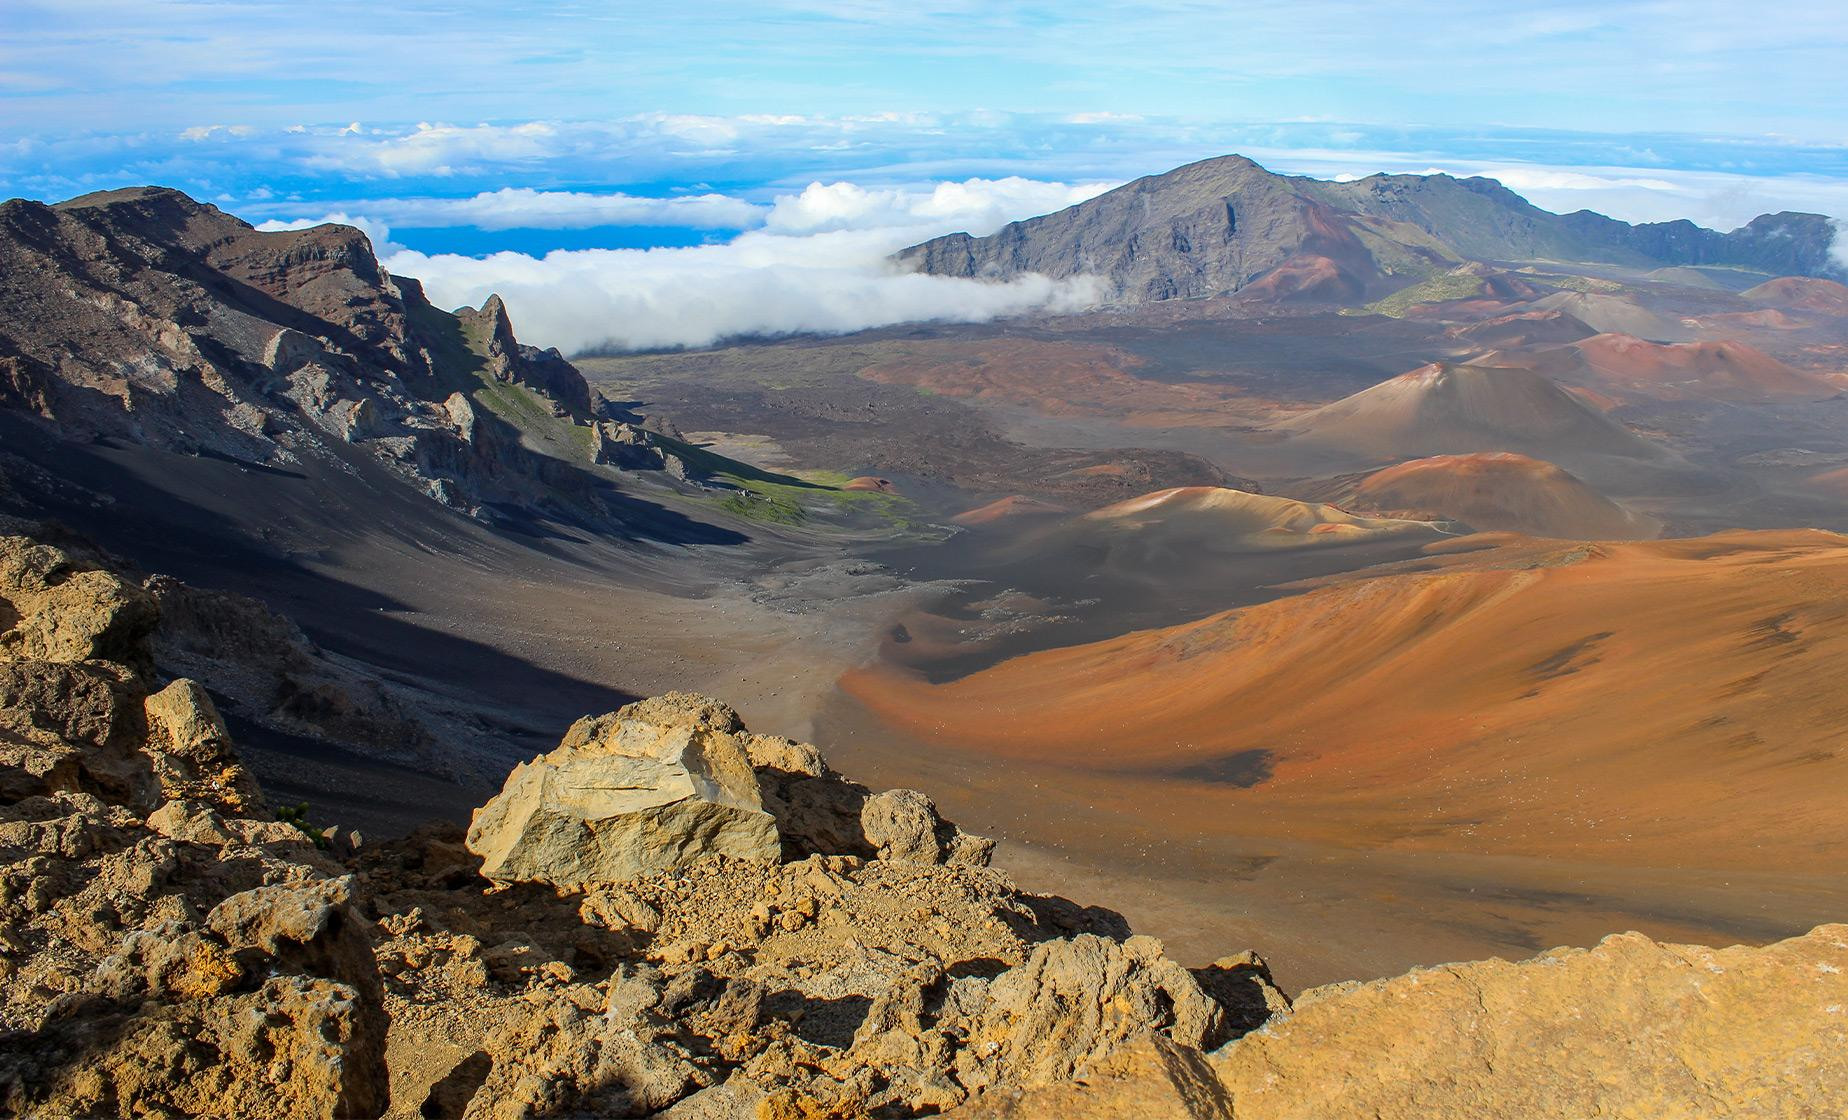 Haleakala Crater, Upcountry and Iao Valley